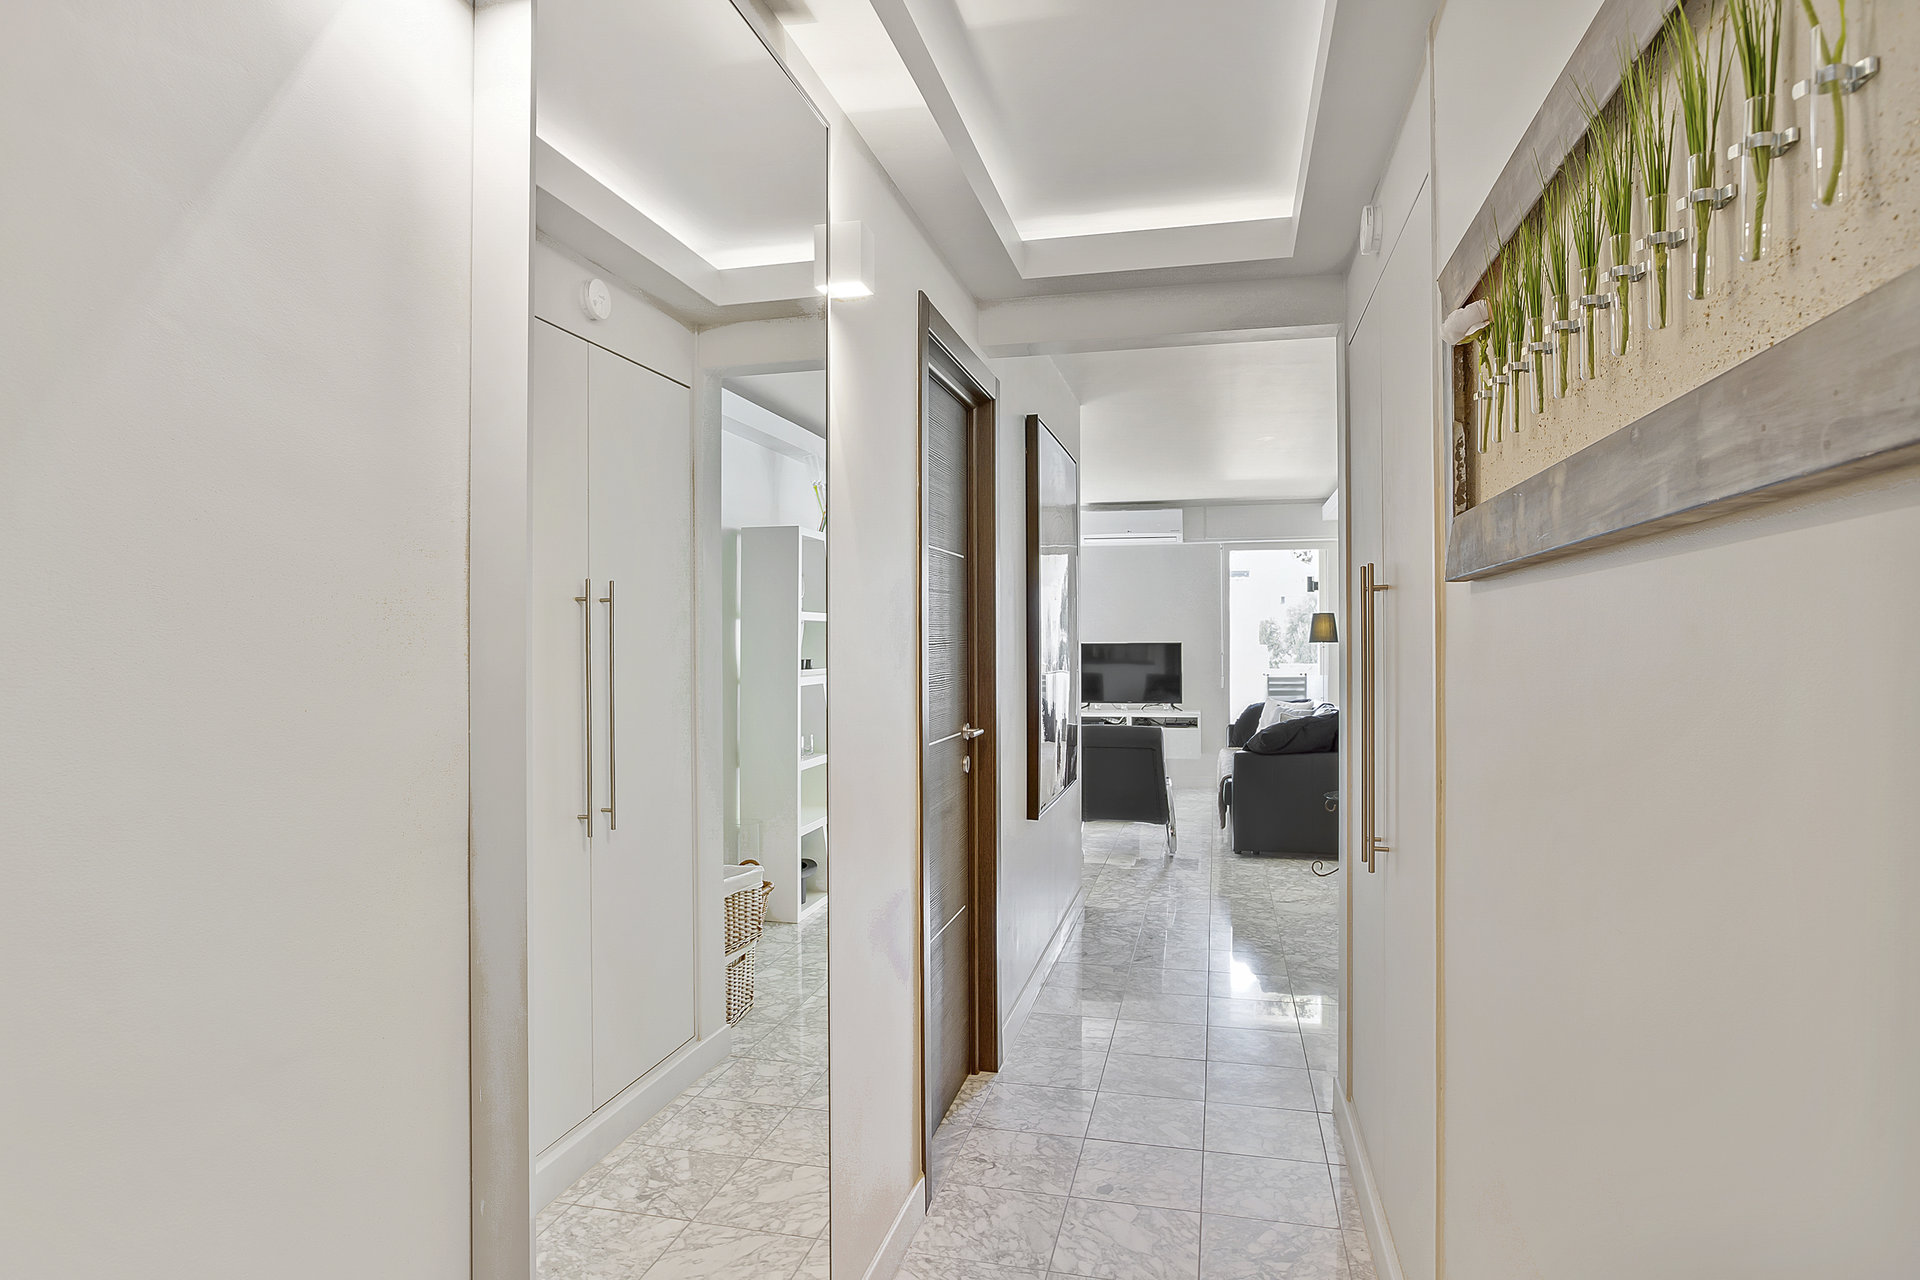 2 bed renovated apt in a prestigious residence on the famous Croisette in Cannes